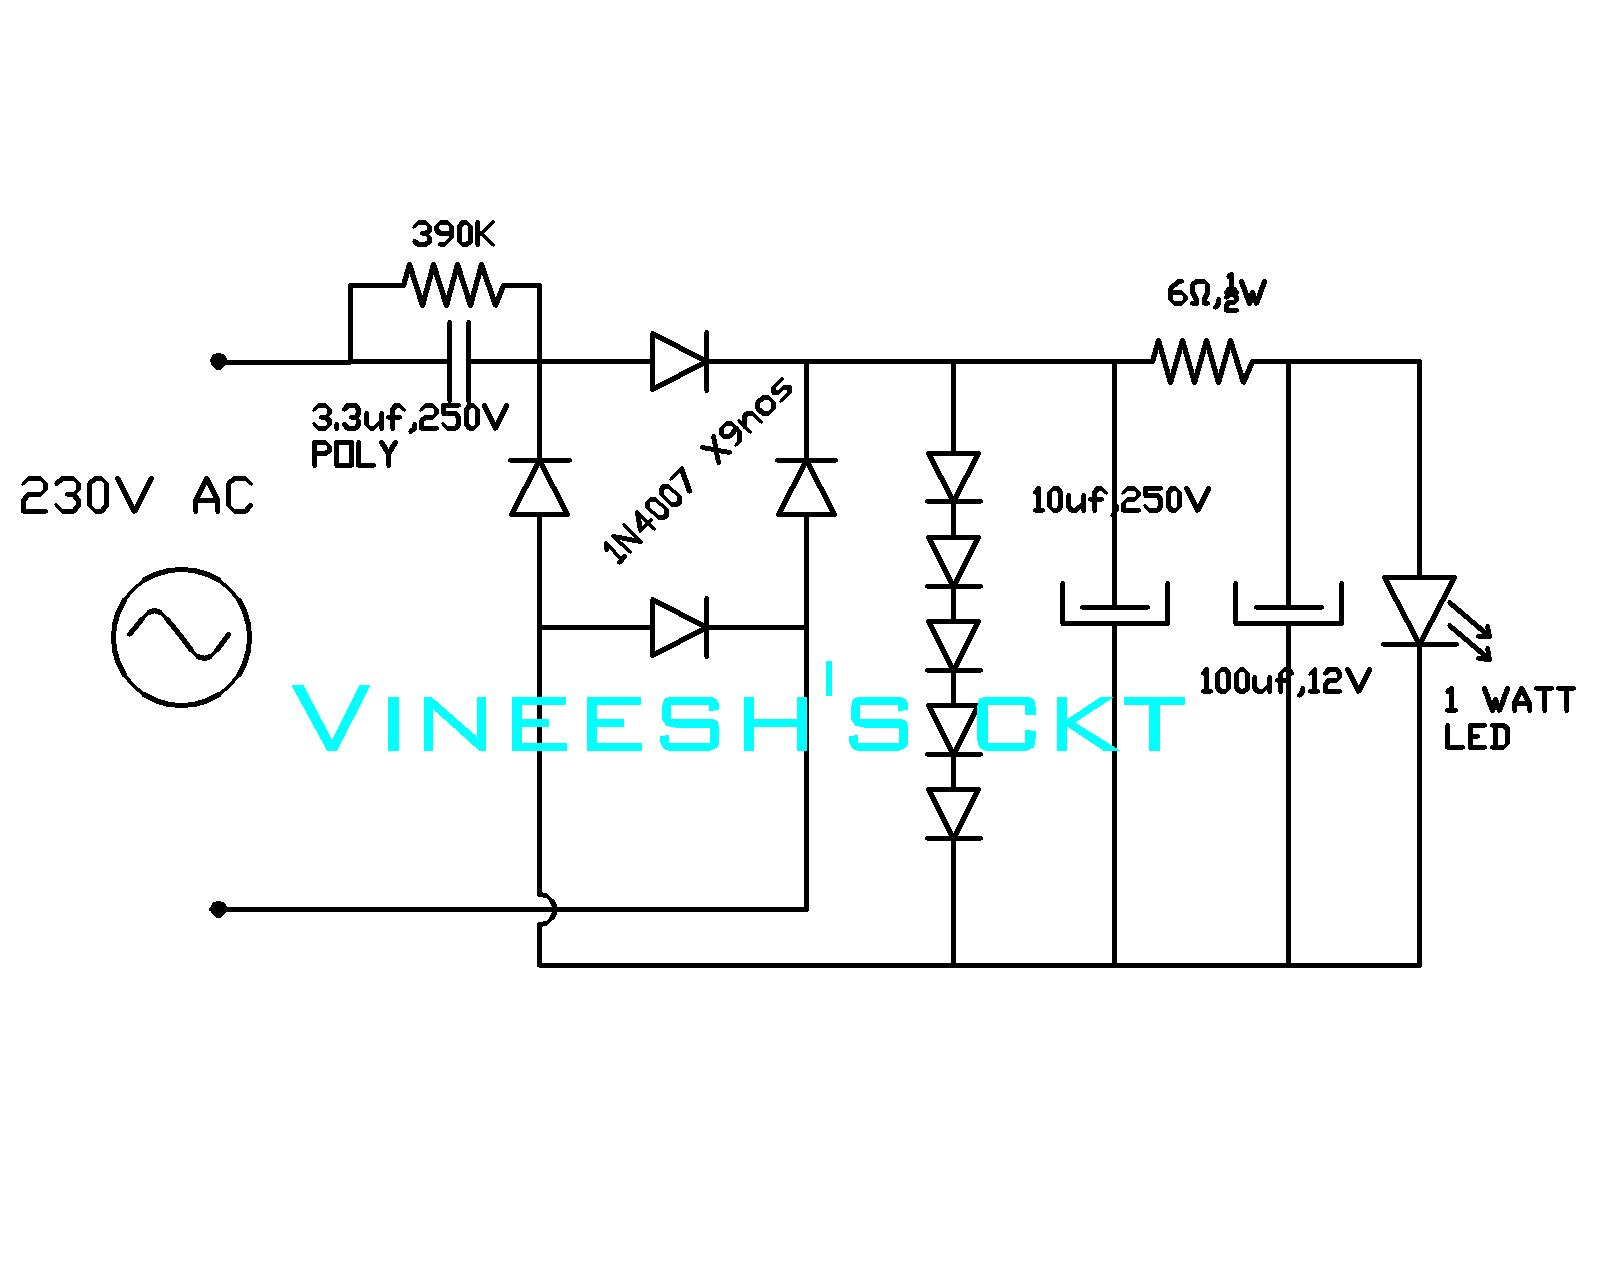 simple circuits vineetron 230v to 1 watt led driver simple led driver circuit diagram 1 watt led driver circuit [ 1600 x 1280 Pixel ]